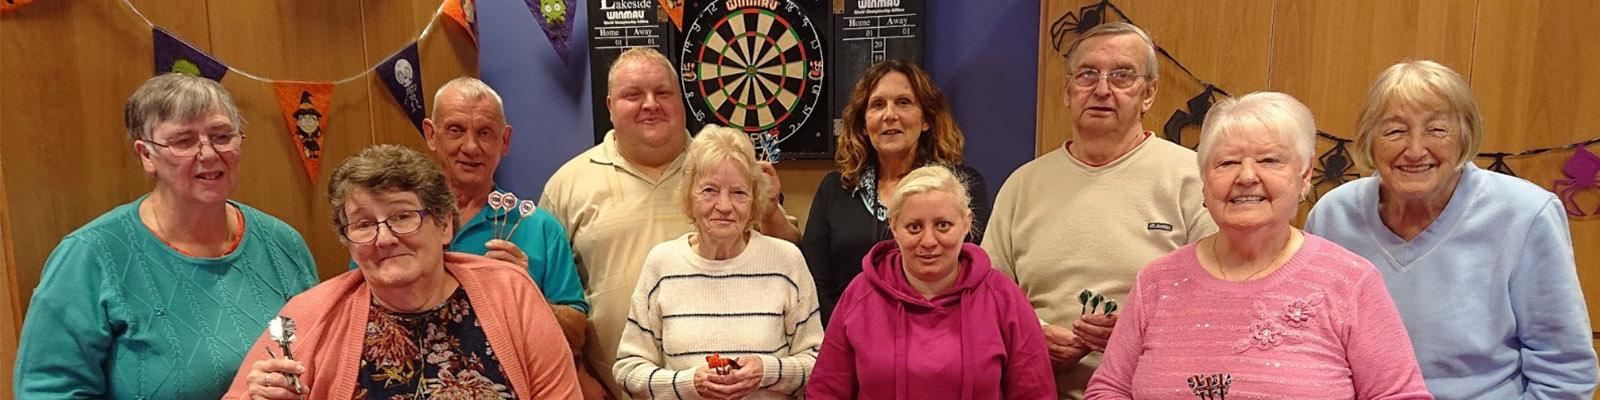 10 residents in front of a dart board